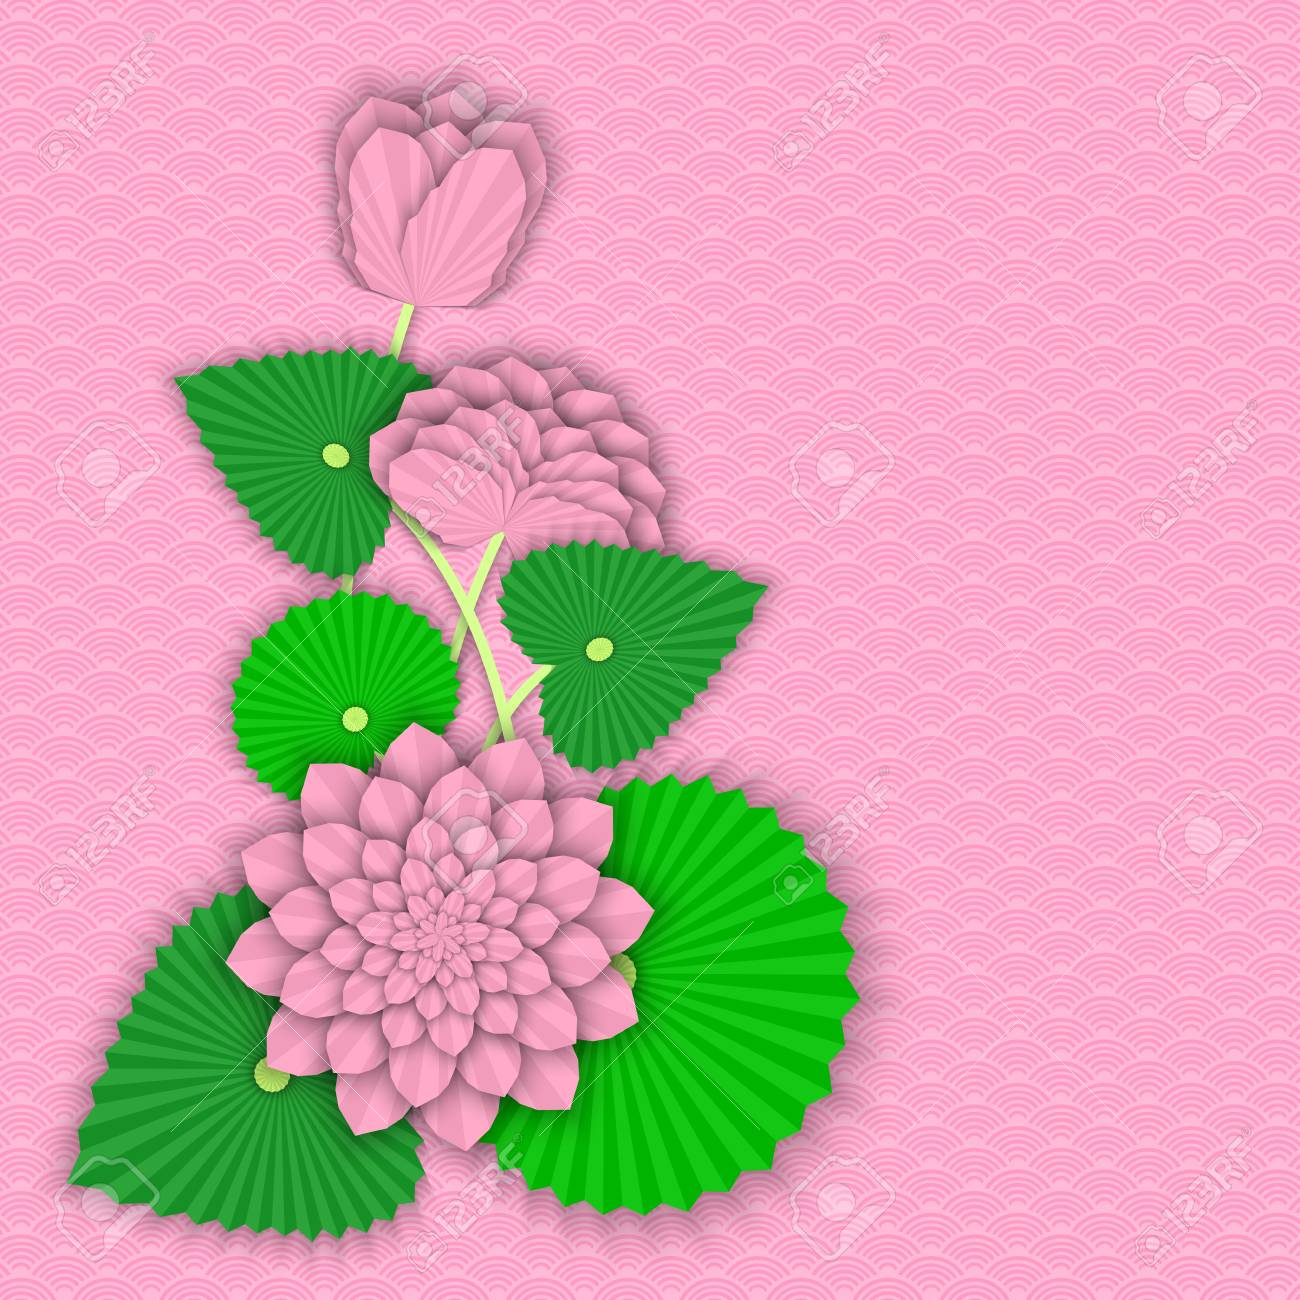 Flowers And Lotus Leaves In Origami Style On Traditional Oriental